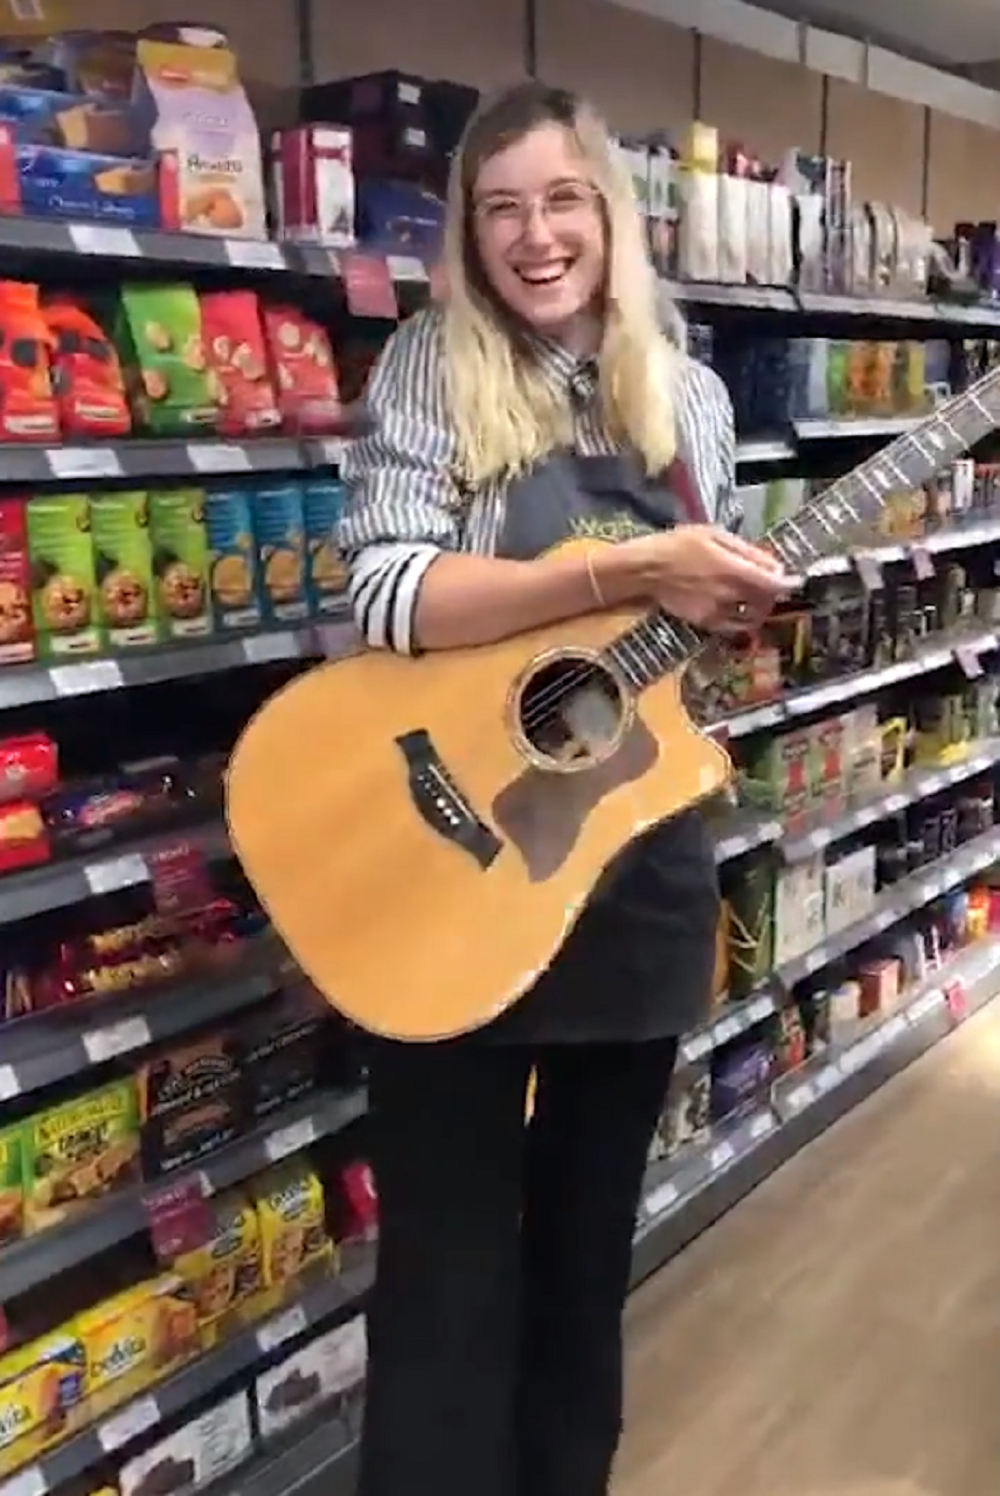 Karina Ramage in Waitrose with her guitar